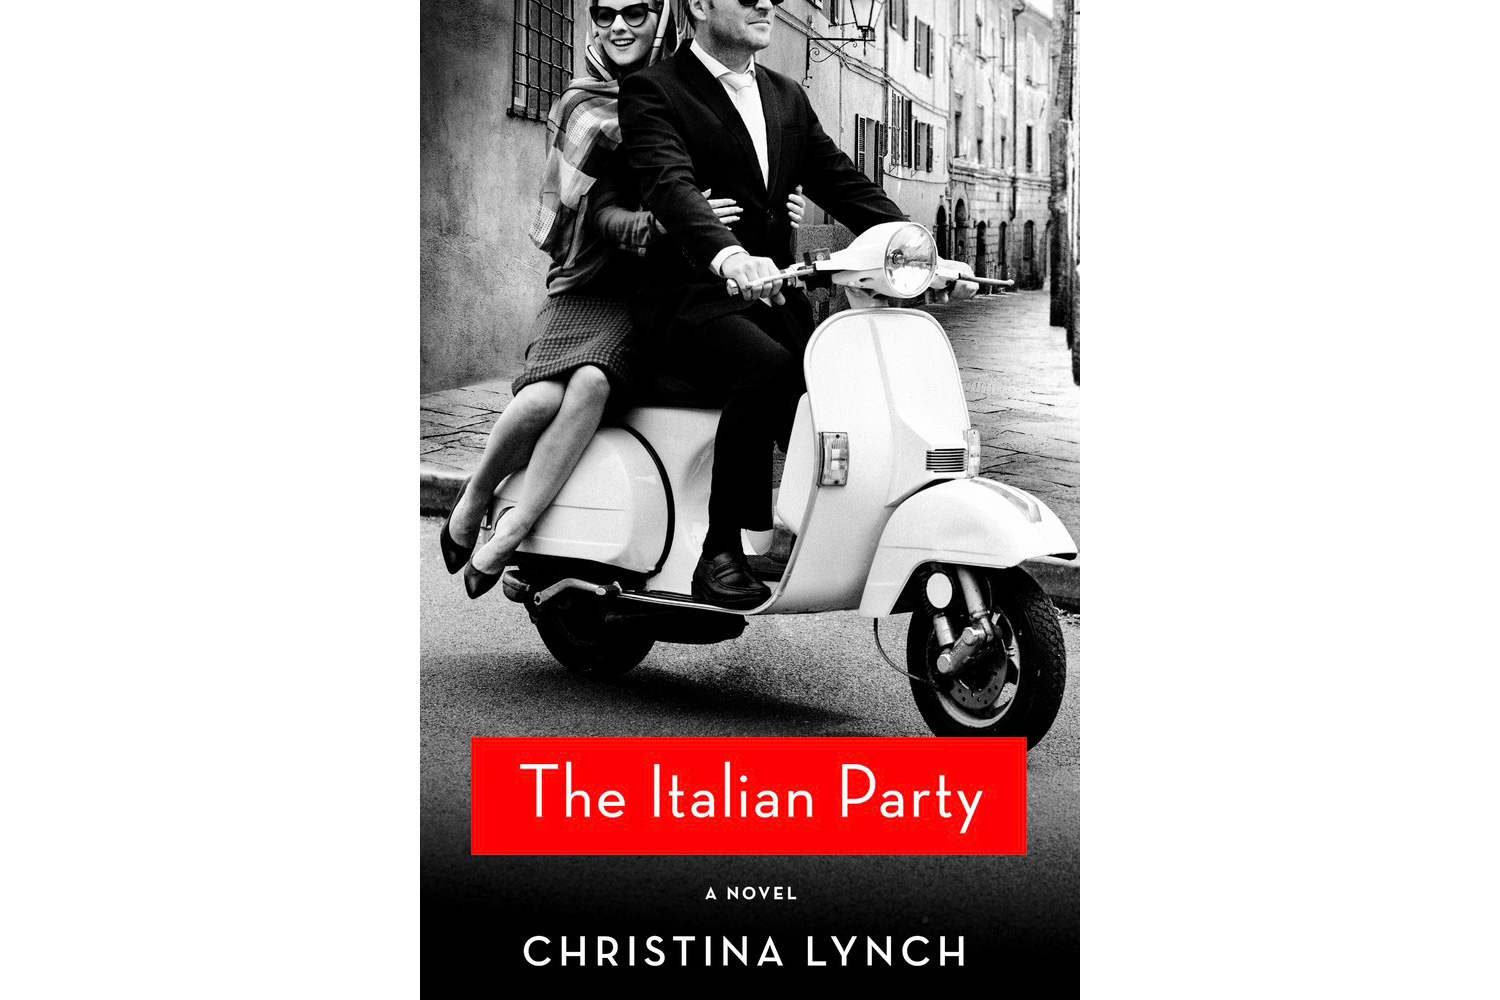 The Italian Party, by Christina Lynch